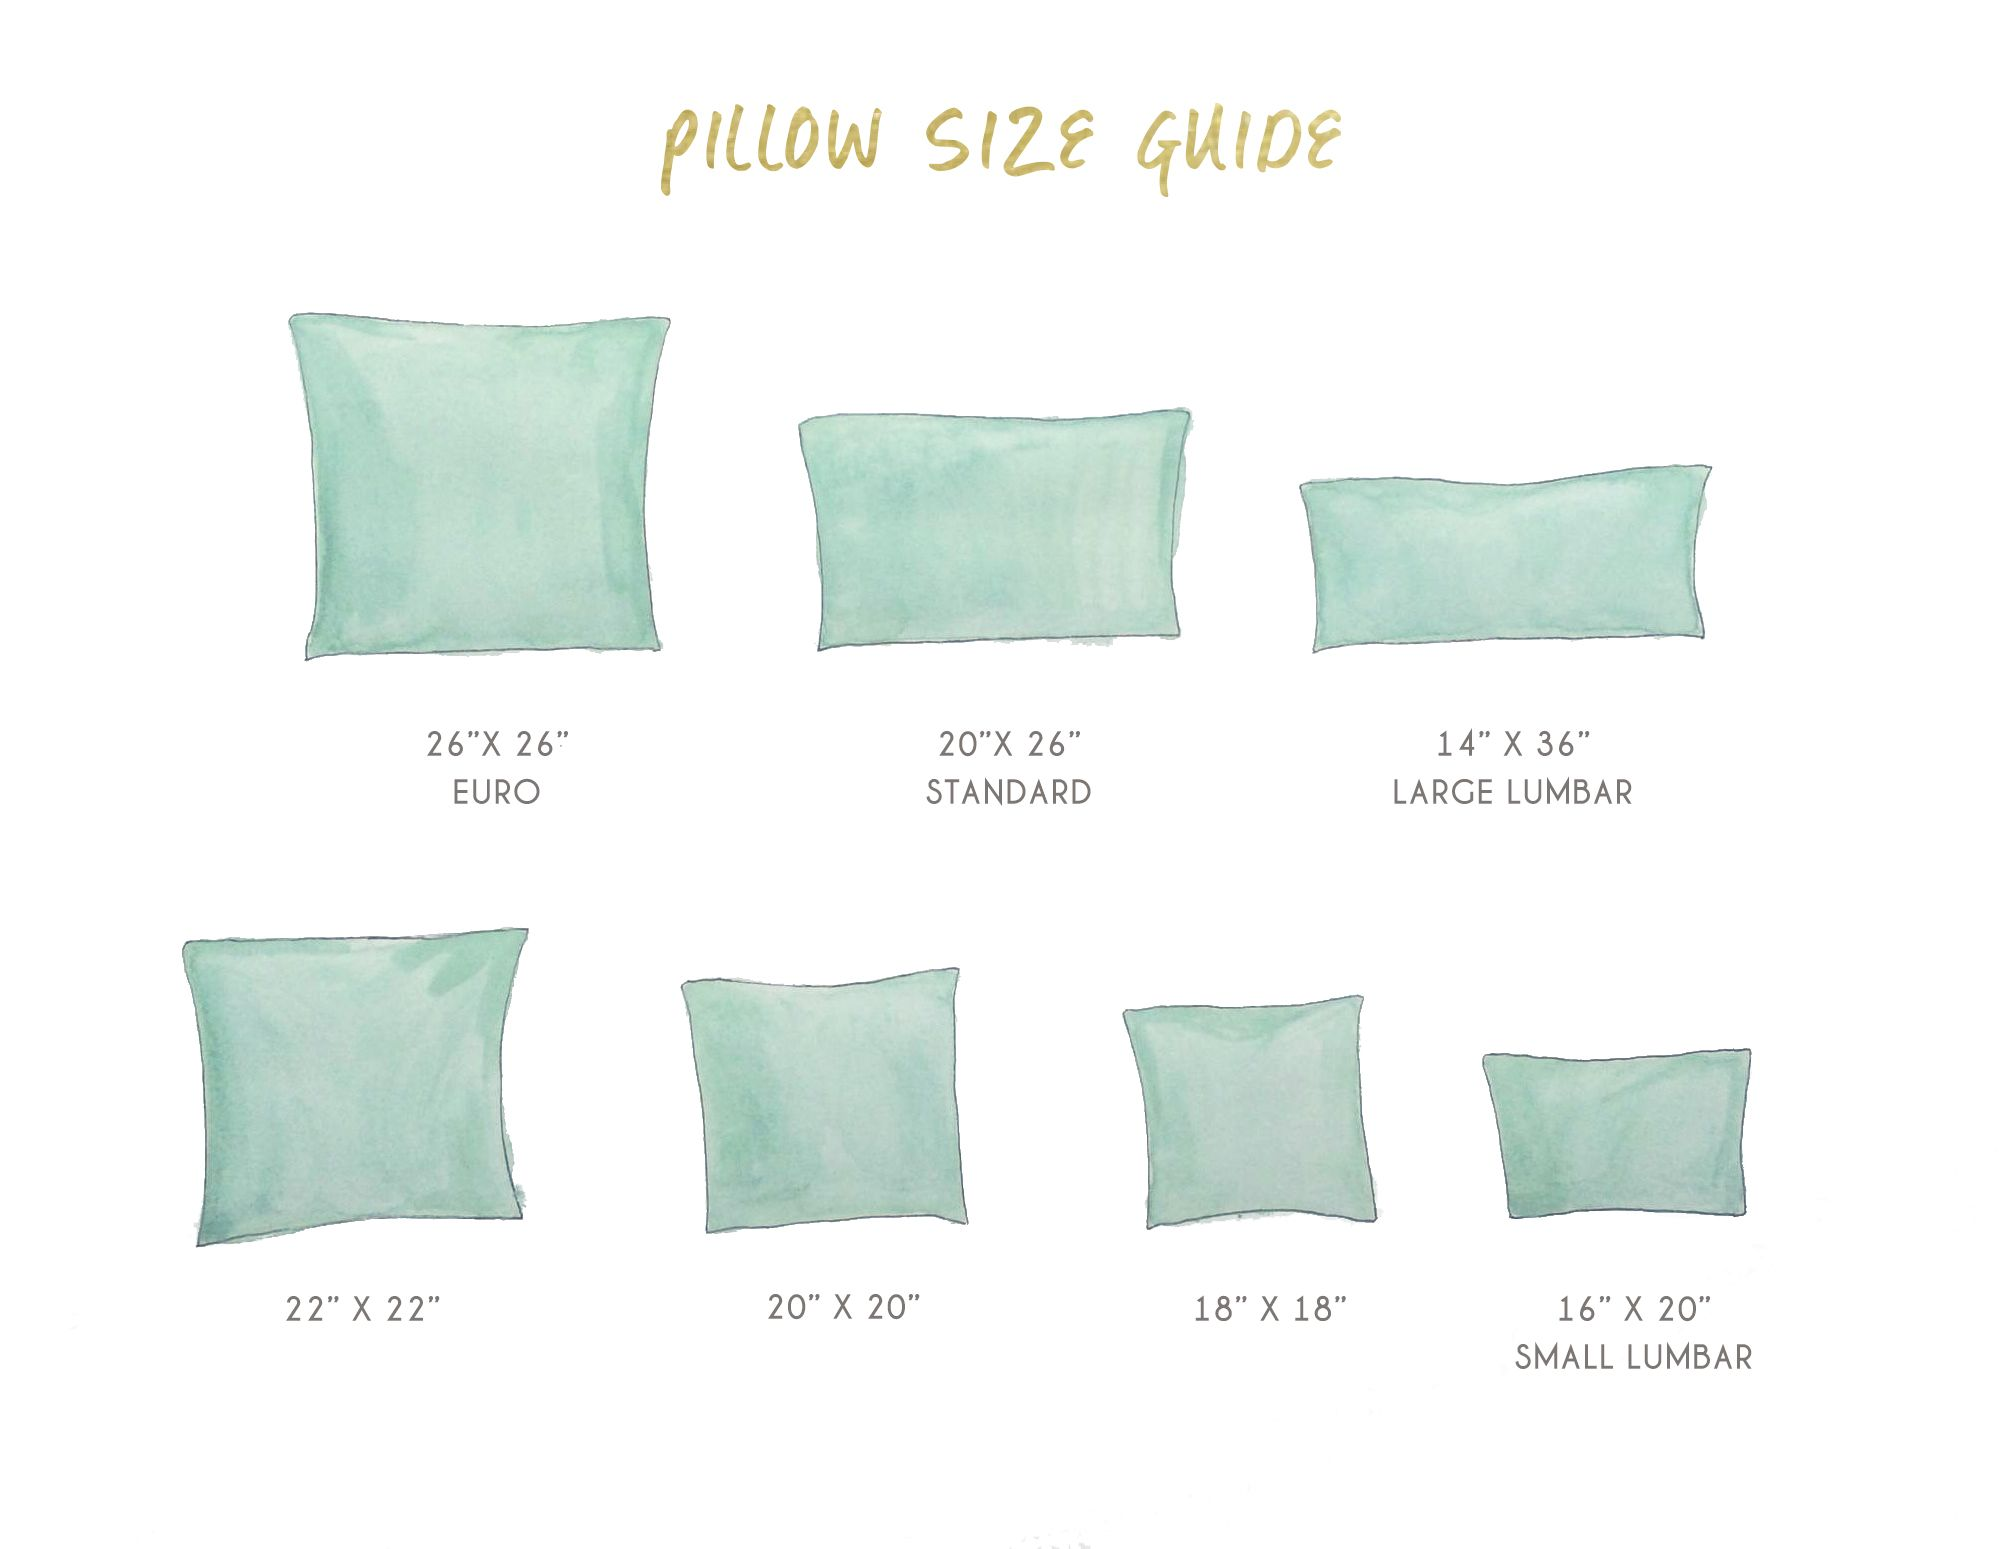 Decorative Pillow Guide : pillow sizes - Google Search pillow jardin Pinterest Pillows and Fabrics